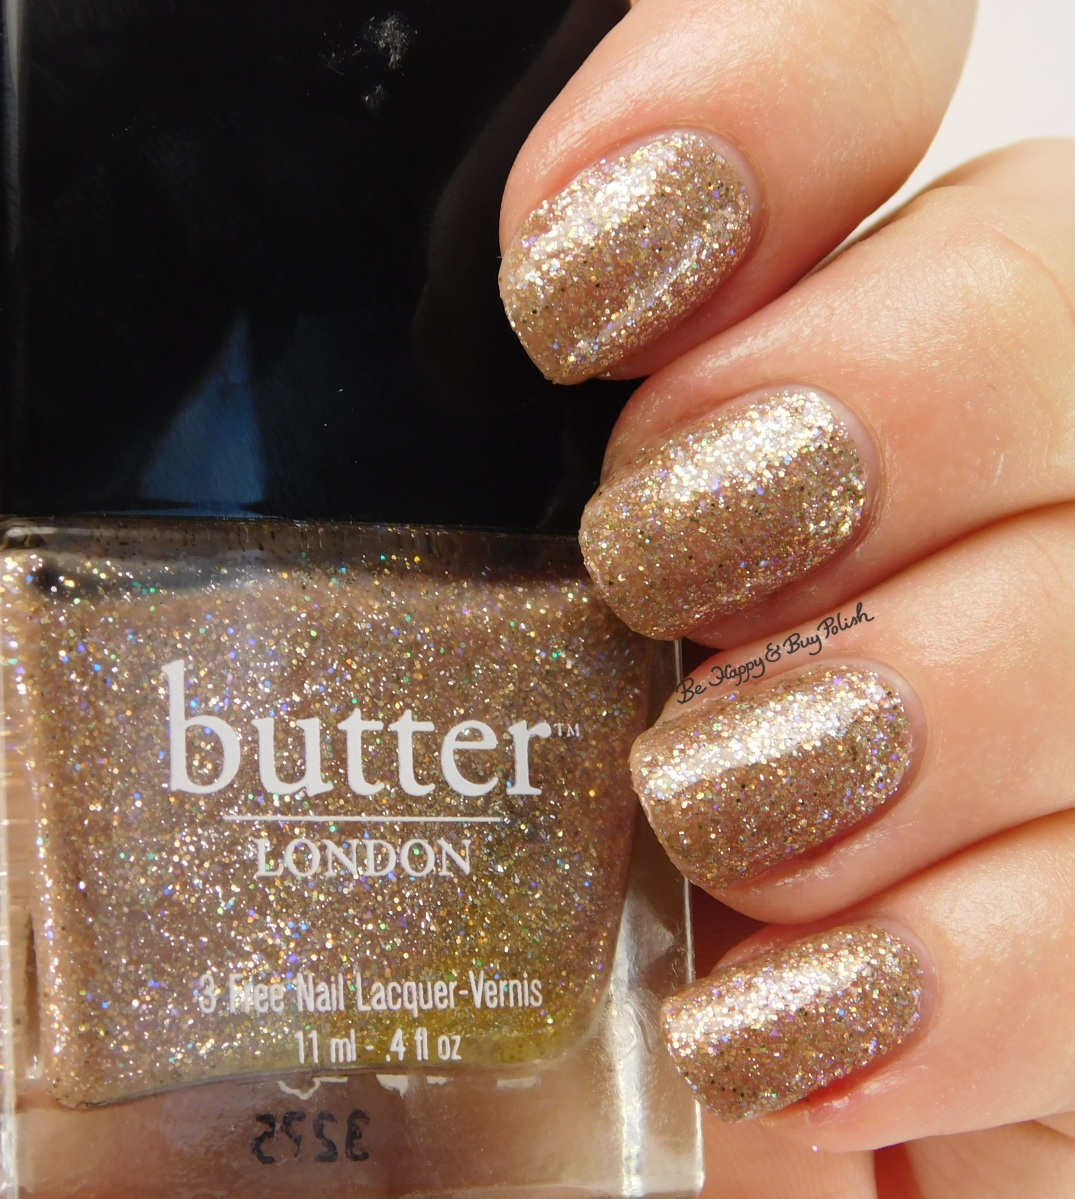 butter LONDON Lucy in the Sky nail polish swatch + review